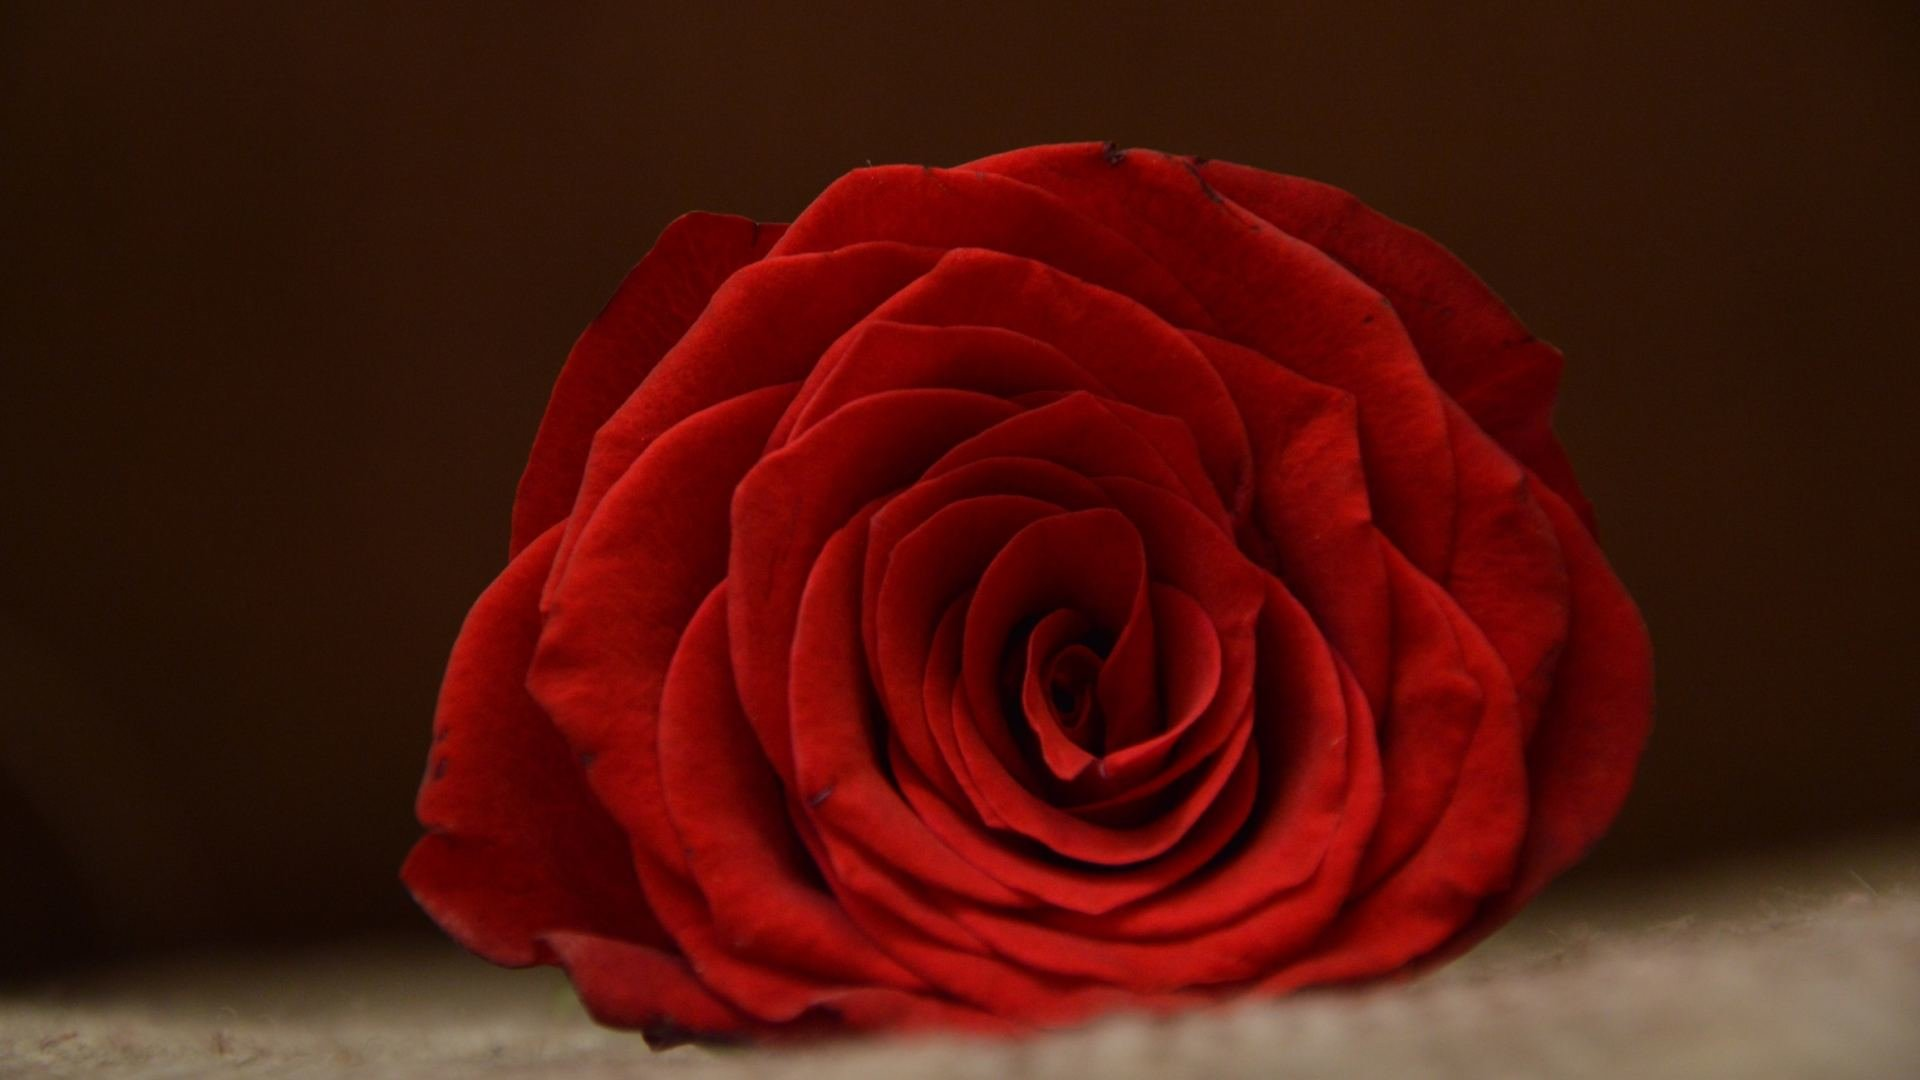 High Resolution Rose Hd 1920x1080 Background ID472154 For Computer